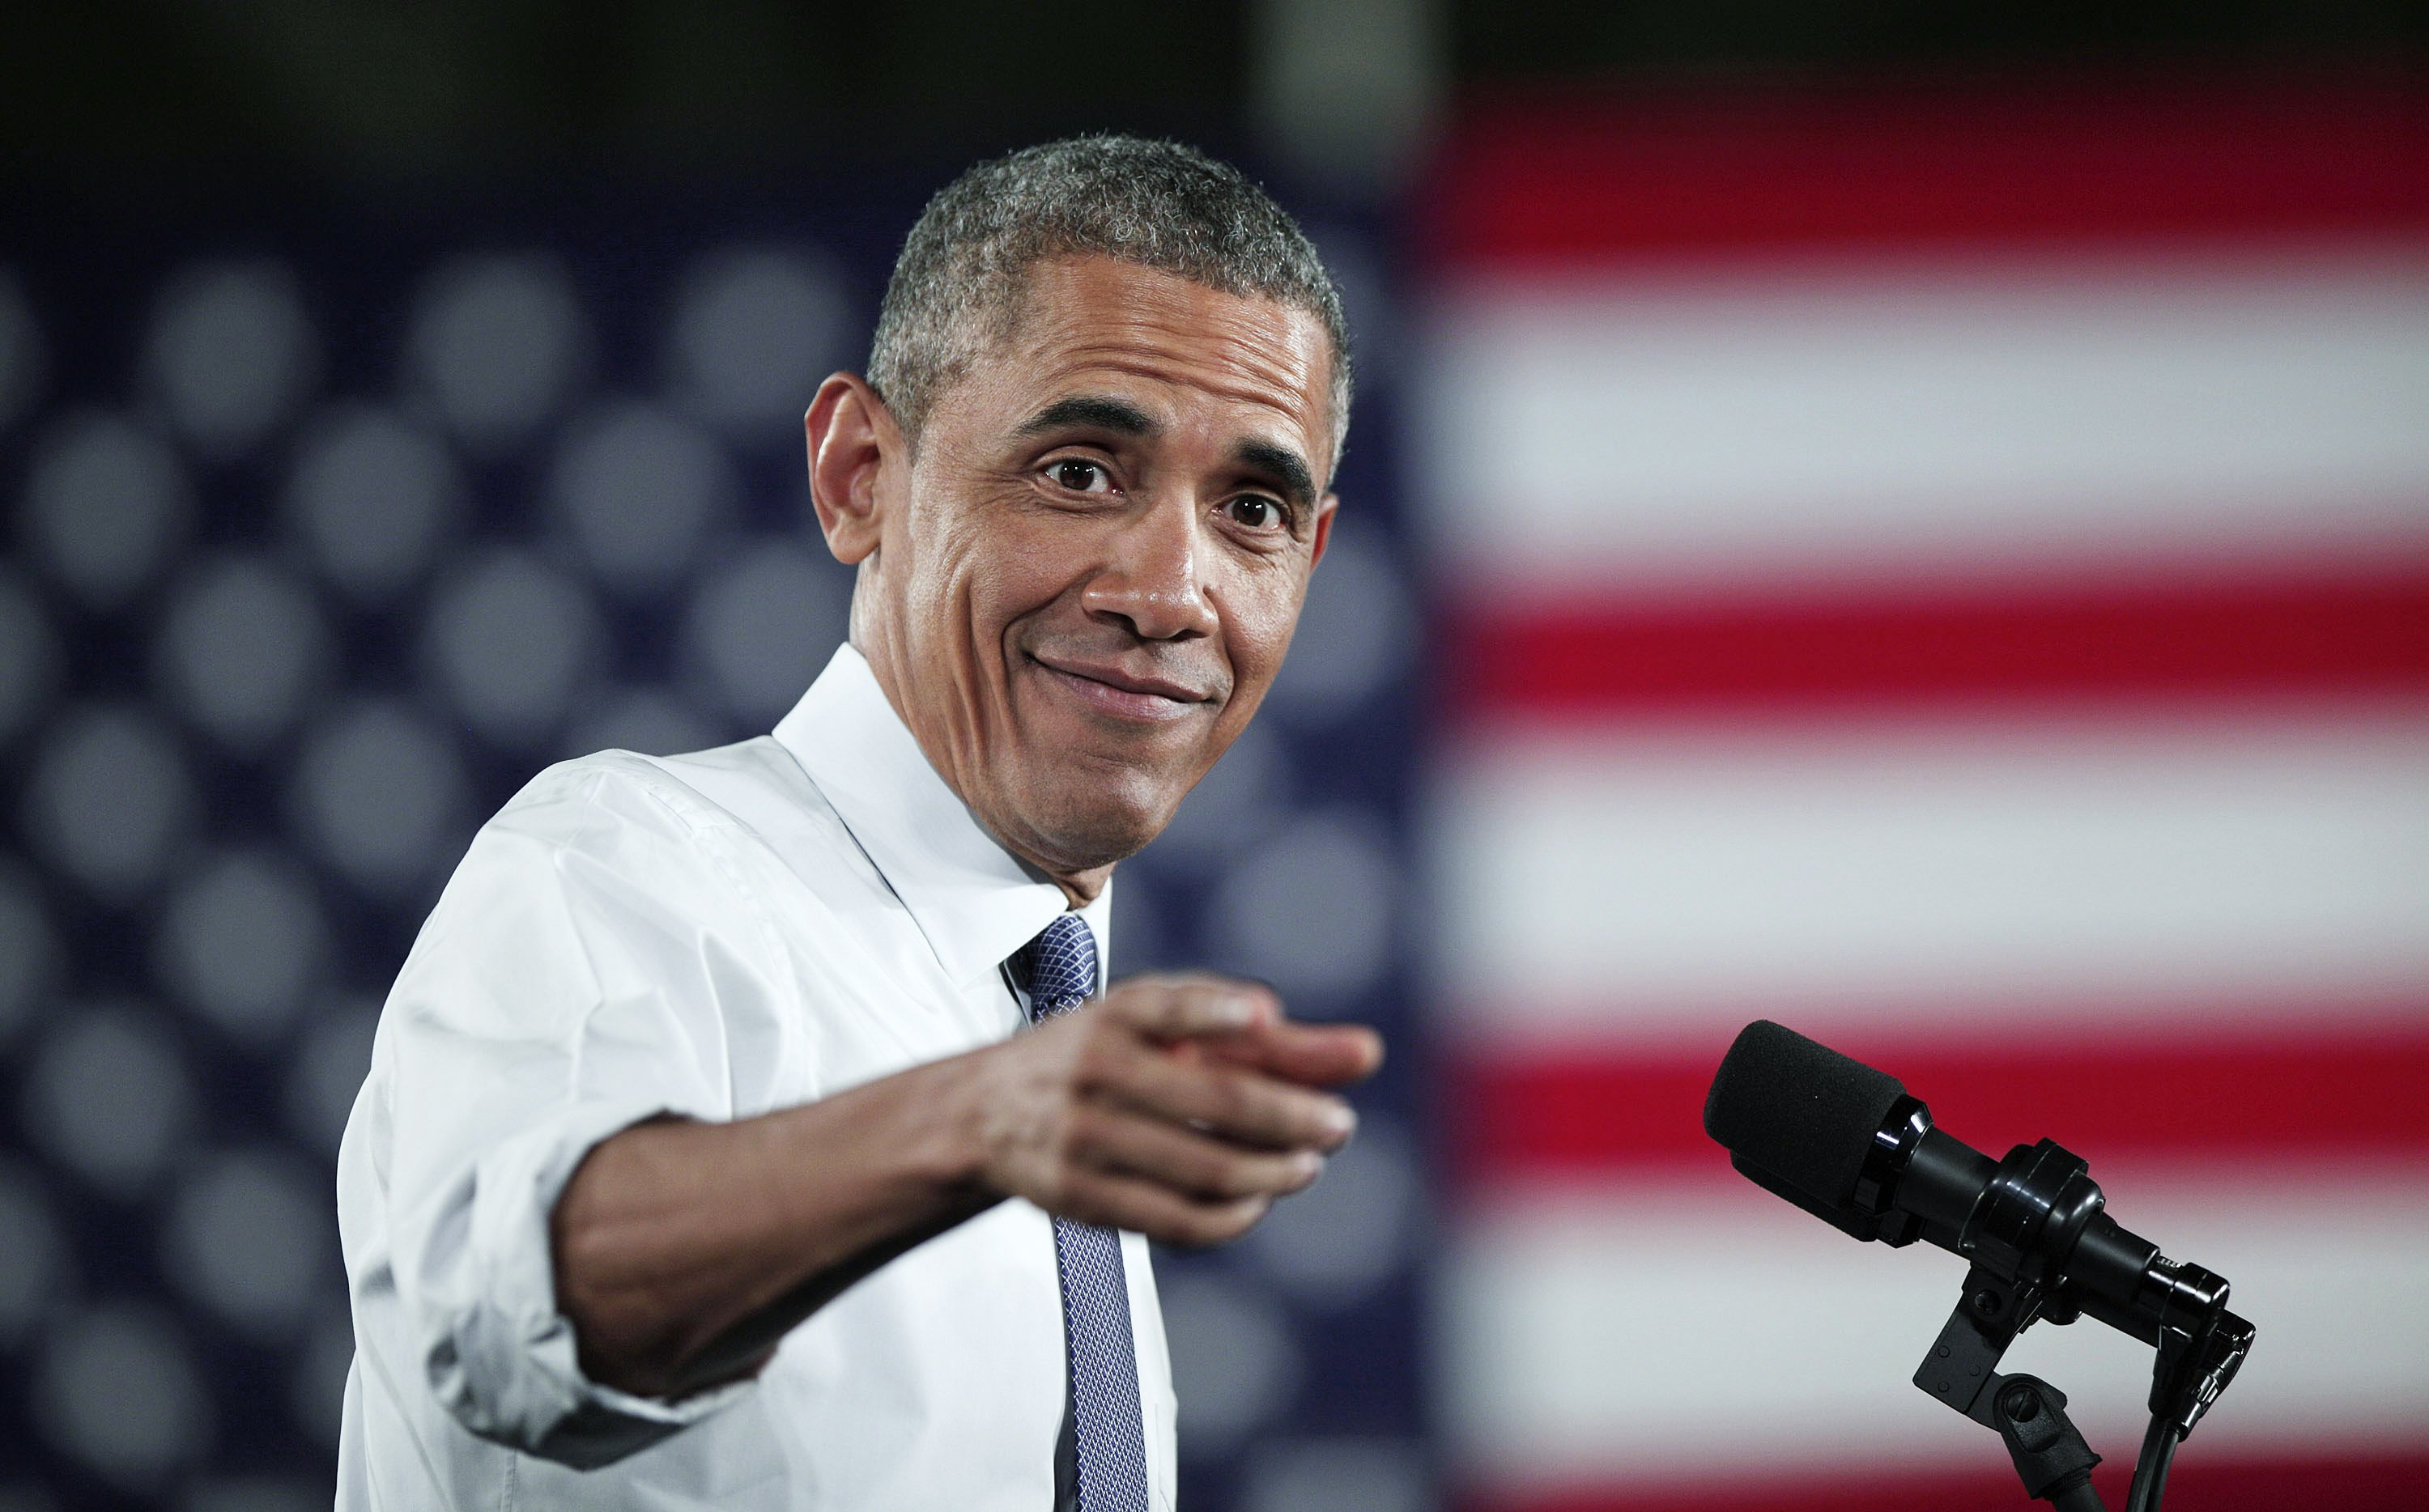 Barack Obama at the Ford Michigan Assembly Plant, 2015 in Wayne, Michigan | Source: Getty Images